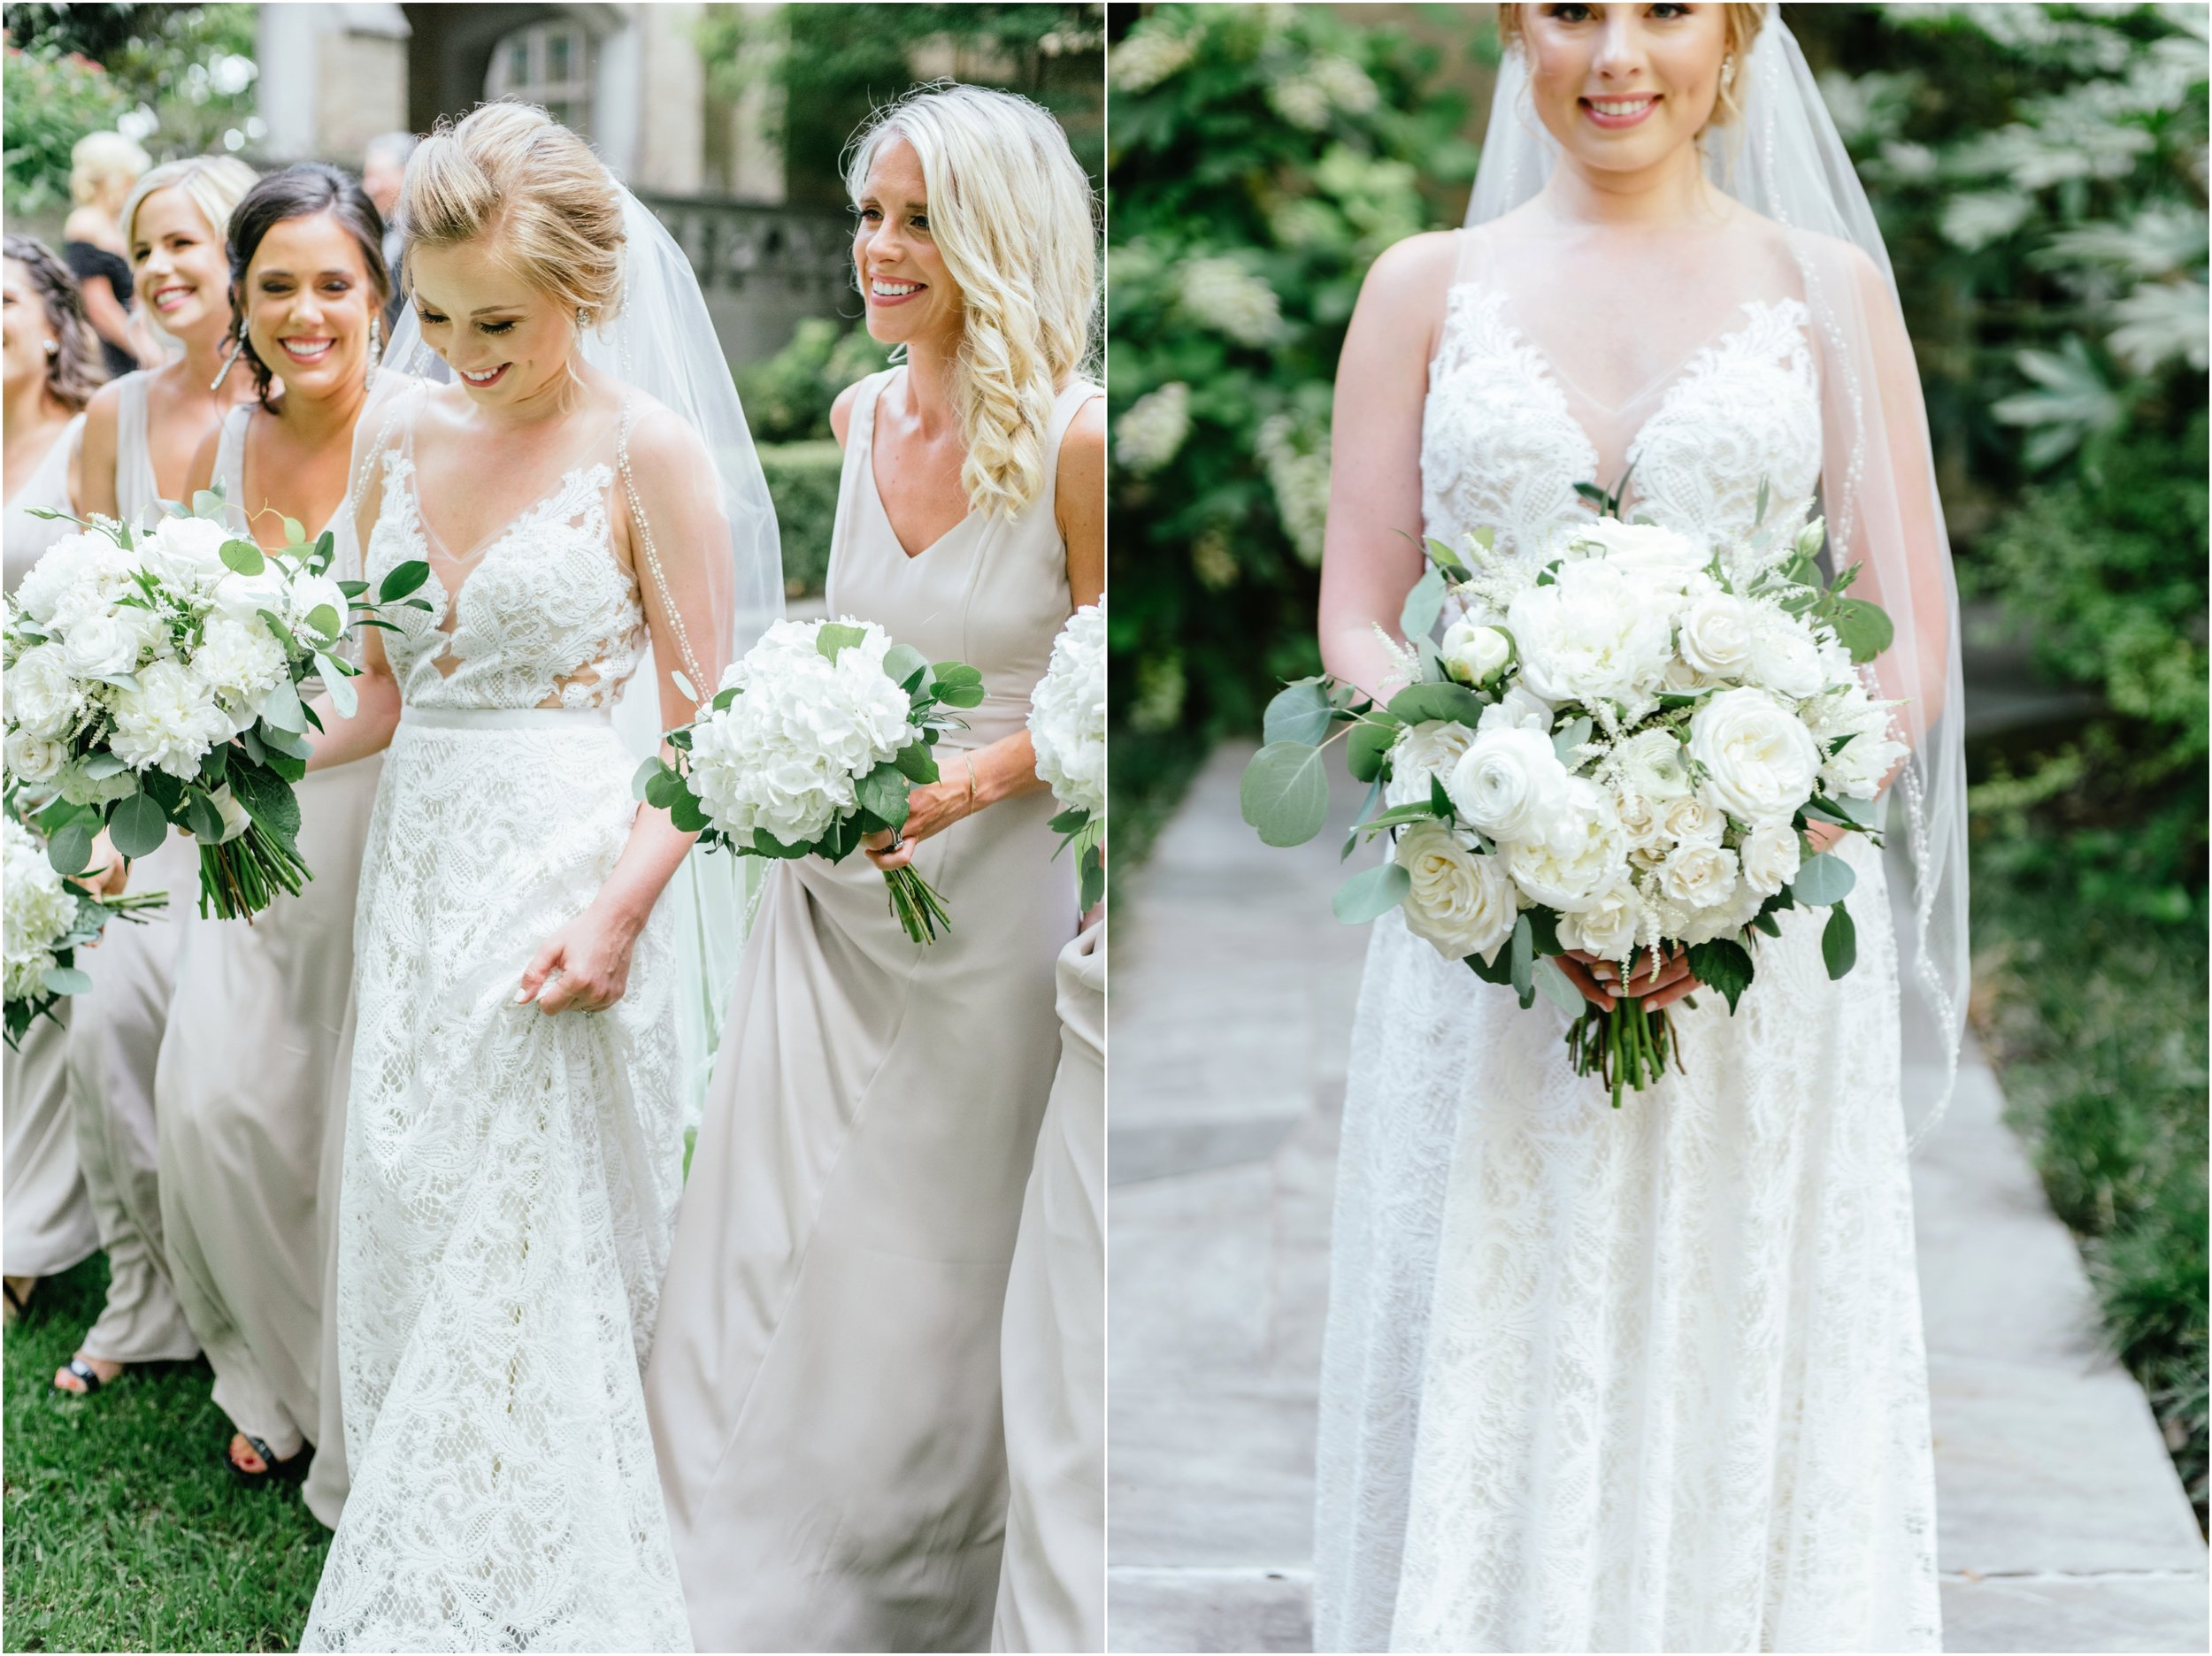 dallasweddingphotographer_fortworthweddingphotographer_texasweddingphotographer_mattandjulieweddings_Lauren+Andy_0055.jpg